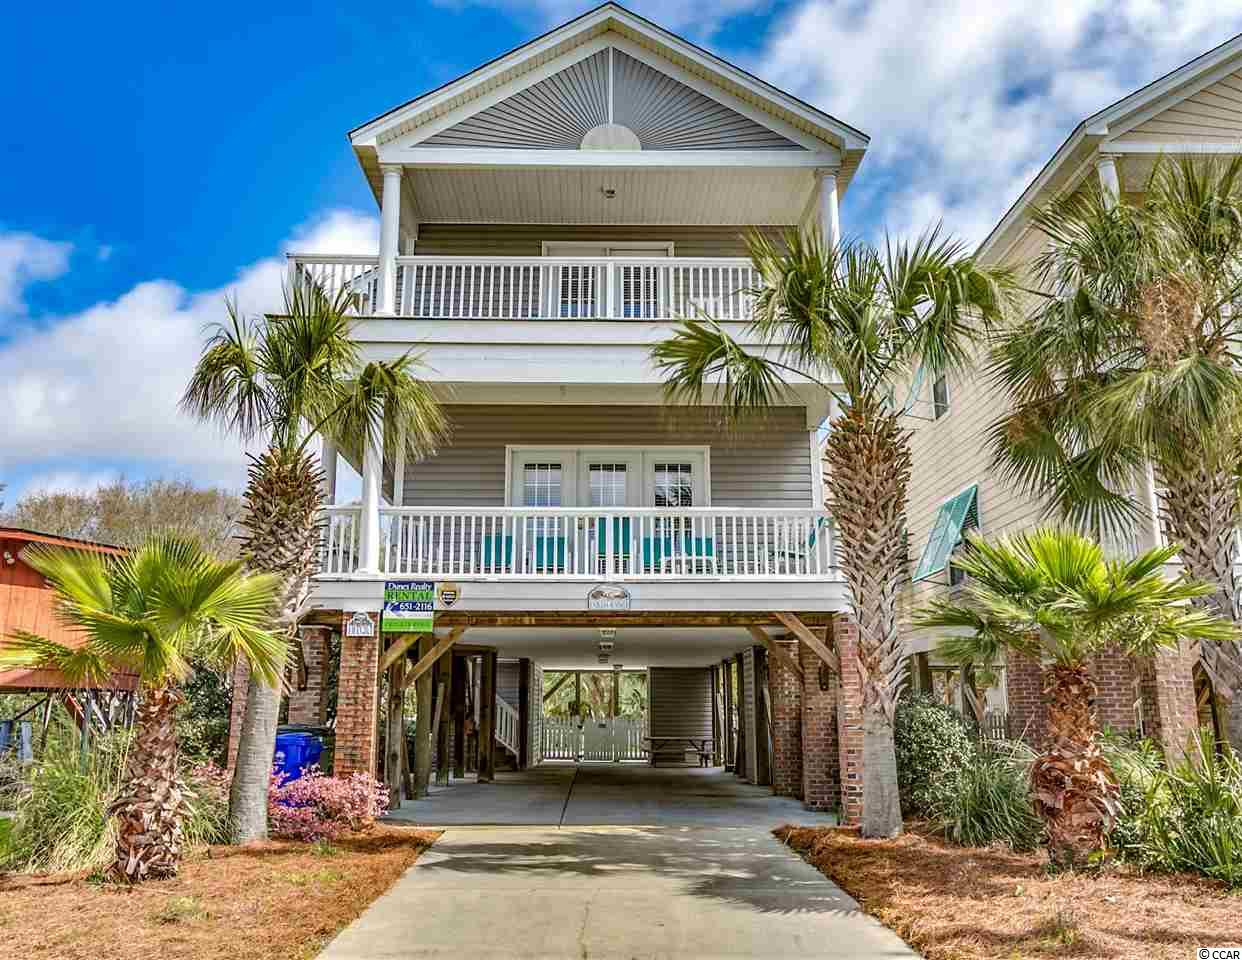 Closing scheduled for 9/16/2019. 110A 12th Avenue South known as Endless Summer is a fully furnished, five bedroom, five bathroom, 2612 heated square foot, single family raised beach house located 300 feet to the beach in the Town of Surfside Beach. Situated on an extra wide and deep R3 (zoned for vacation rentals) lot this two-story home has double front covered porches, ground level storage with room for a golf cart, parking for five cars, and low maintenance landscaping with an irrigation system. The fenced in backyard features a private walk-in pool, large patio, and plenty of flexible space to make this yard your oasis. The home, constructed in 2005, was built with an elevator shaft and pit (currently used as owner storage) ready for a residential elevator to be installed. The open living areas with tile and new LVT (Luxury Vinyl Tile) floors provide abundant space for large gatherings.  There are new granite kitchen countertops. The main level has direct access to the lower level covered porch off the living room, and there is a large bedroom and bathroom at the rear of the home. Upstairs there are four additional bedrooms, all with ensuite bathrooms, the laundry room and extra owner storage. The main master suite is located on the front of the home, has direct access to the second-floor covered porch, a bathroom with double sinks, and a garden tub/shower combination. The HVAC system has an existing warranty that expires in November 2022. The house has had over a decade of consistent strong rental history. The new homeowner will have the ability to offset their carrying costs utilizing the current homeowner's book of business managed by a local vacation rental management company. Why continue to rent when you can own a piece of one of the most beautiful stretches of the Grand Strand?